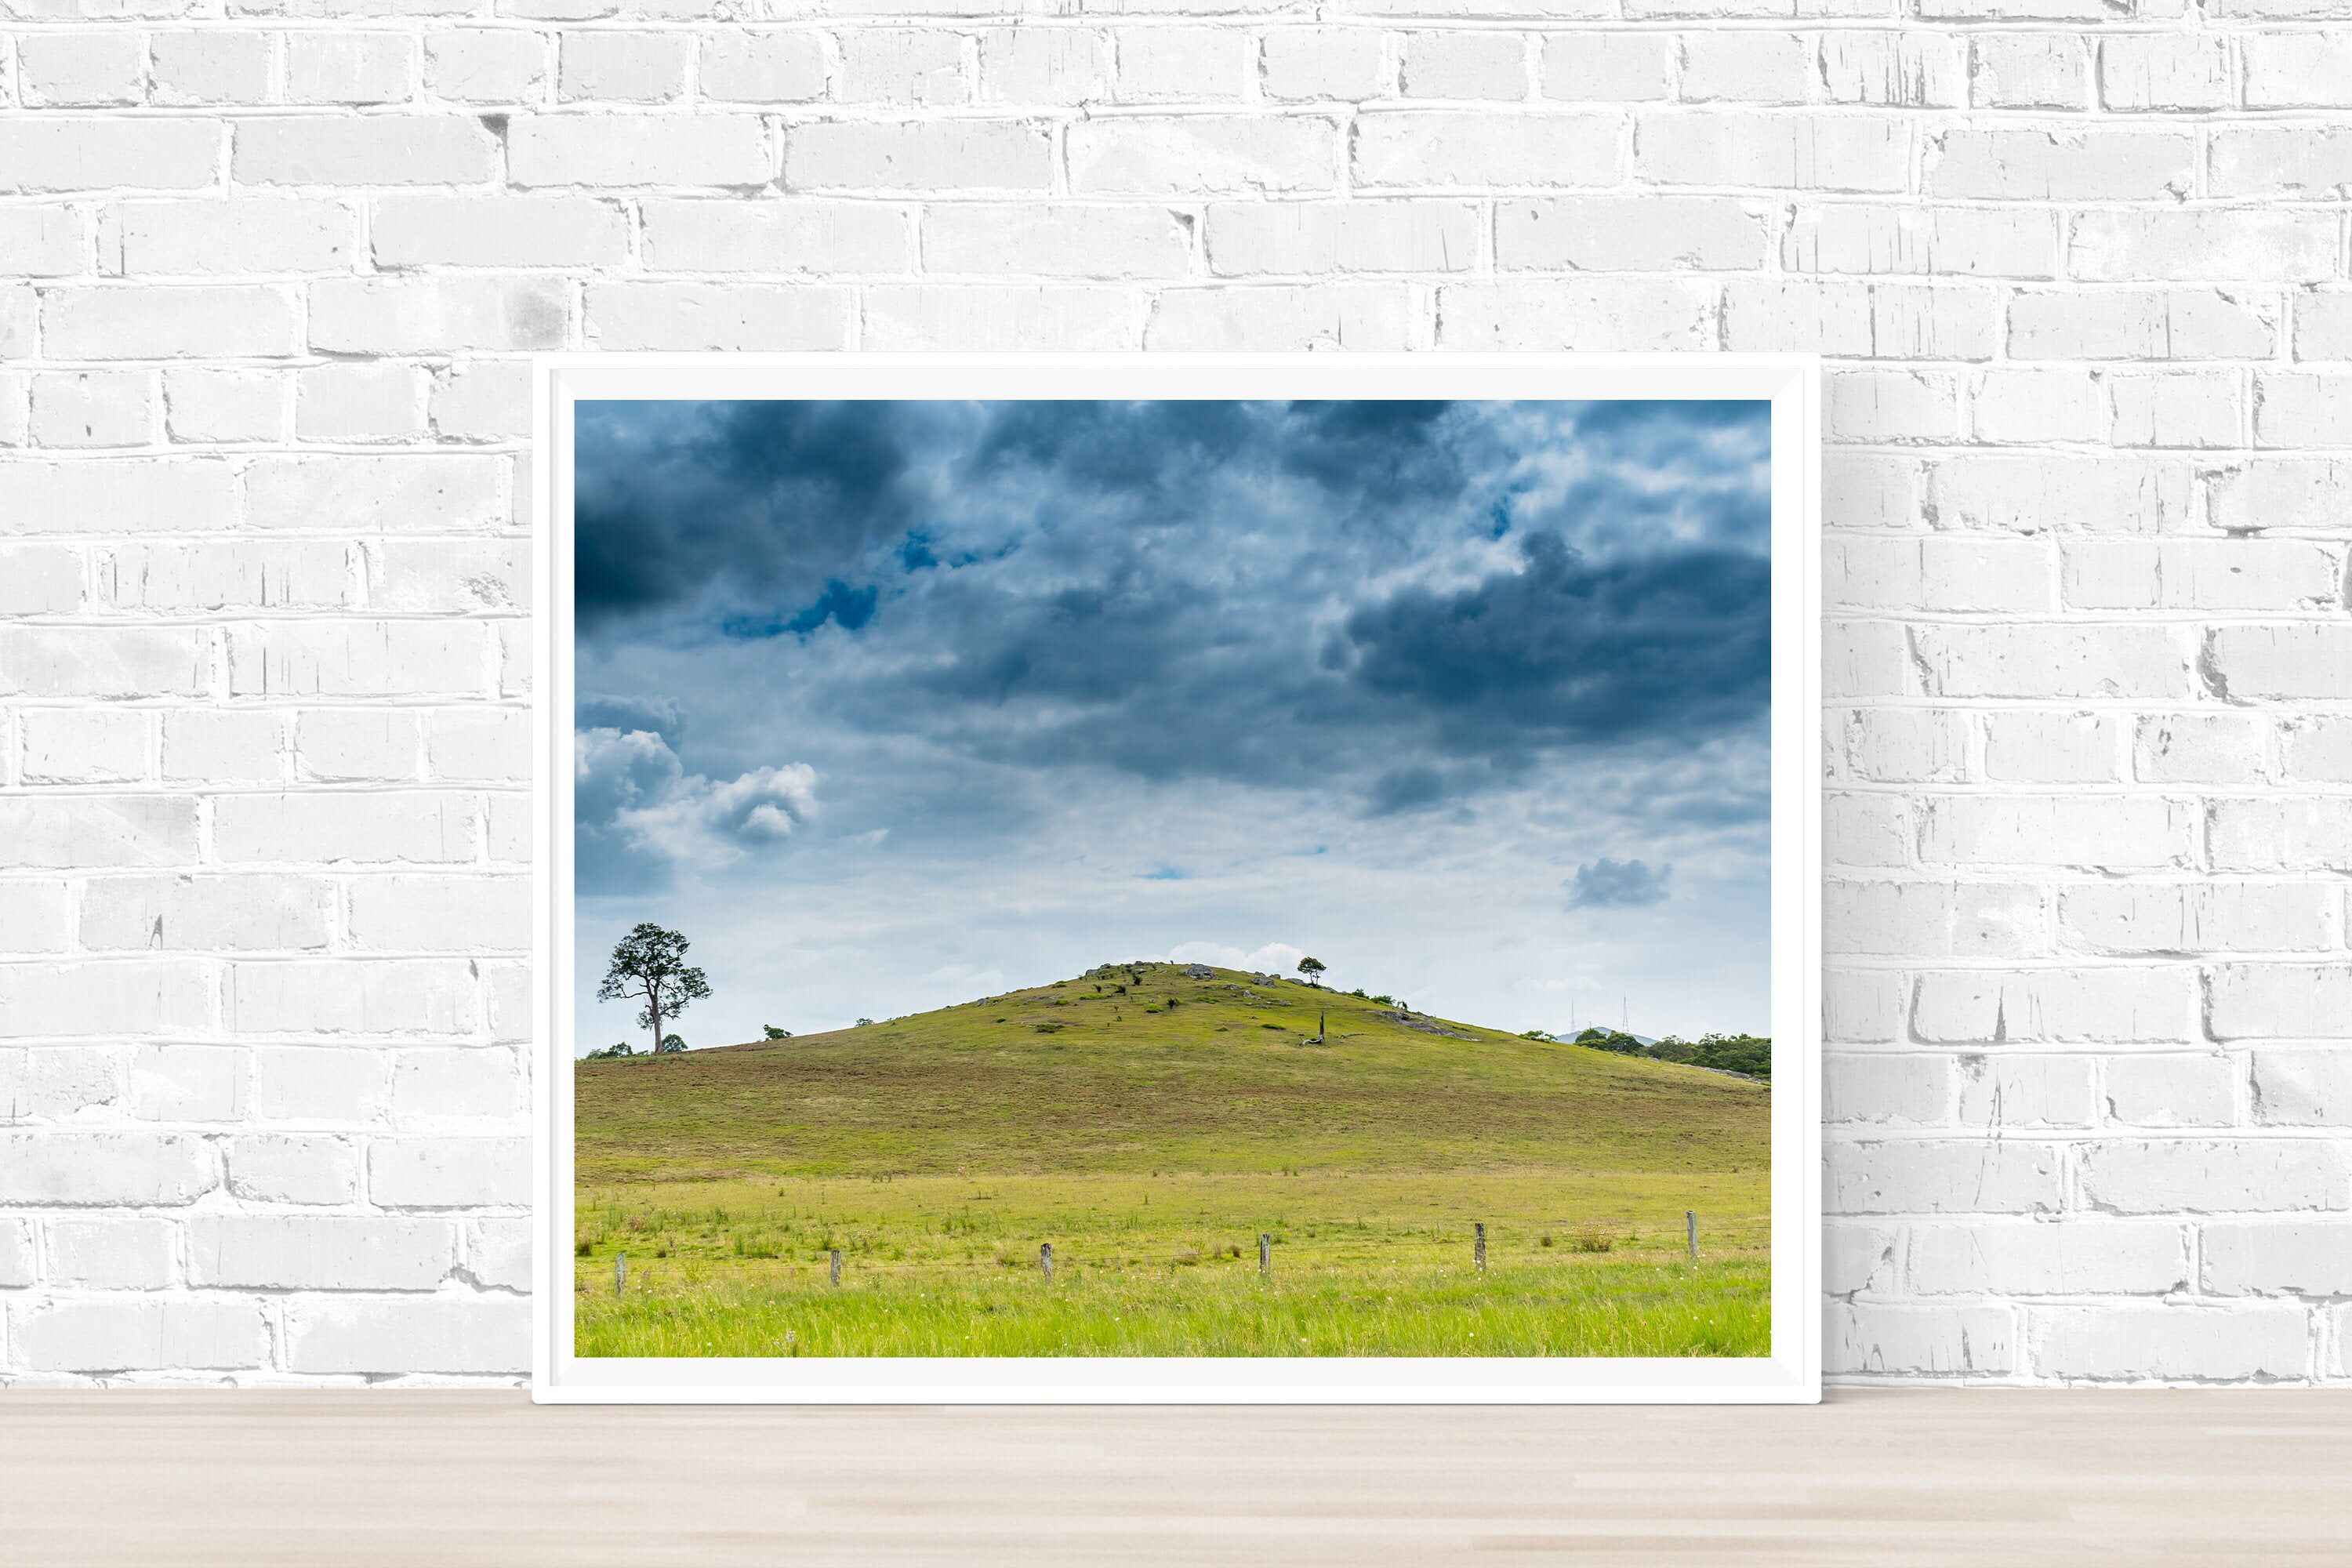 Storm Over Hill Digital Print Australian Landscape Photography Rural Country Hunter Valley Farm Nature Print High Resolution 5 Jpgs Nature Prints Landscape Photography Wildlife Prints